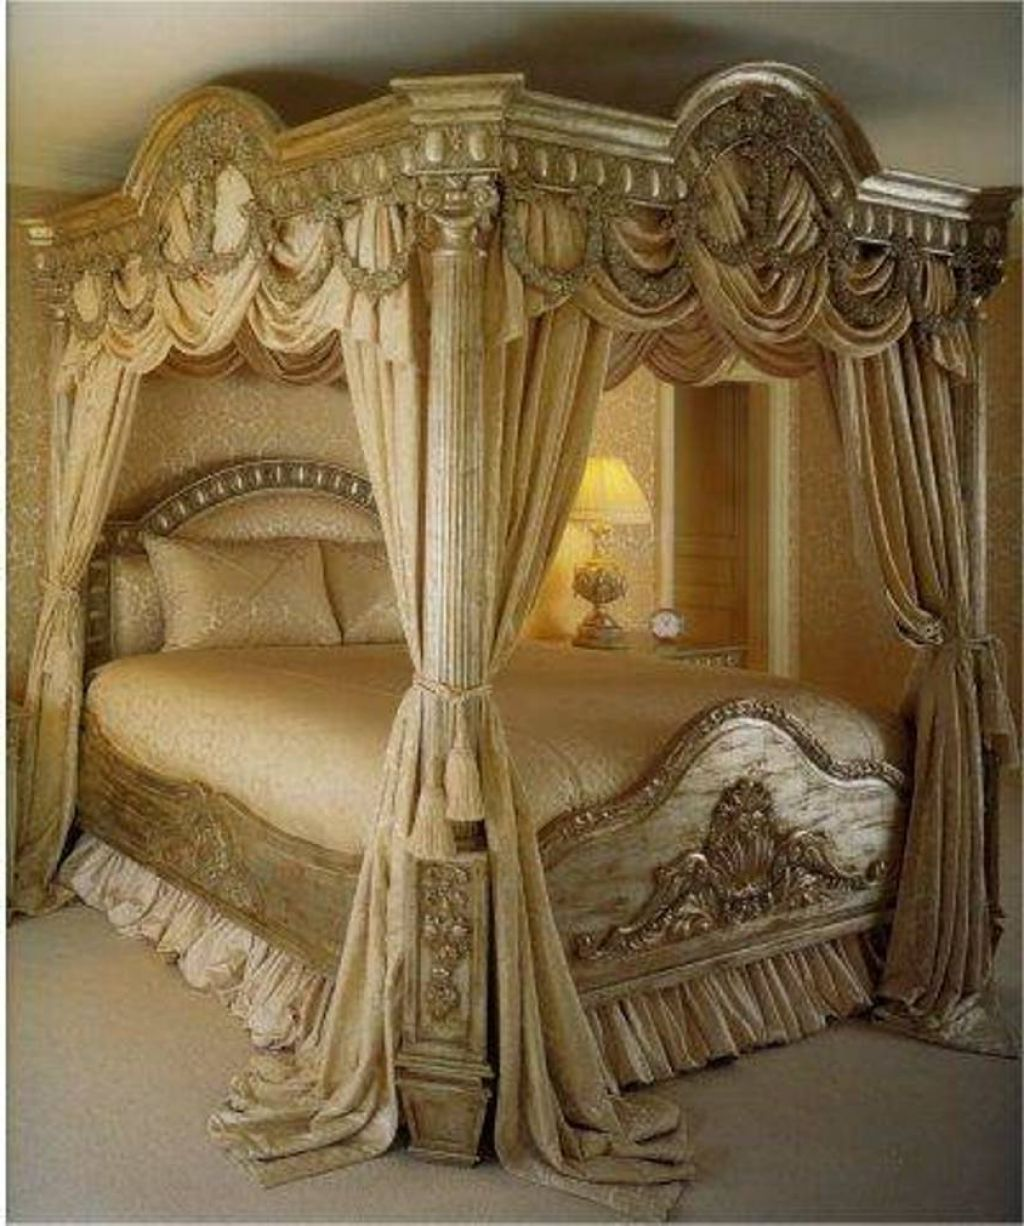 Antique Furniture Hand Carved King Or Queen Bed Of Solid Wood With Gold Leafs Decors From A Castle Distinctive For Its Traditional Properties